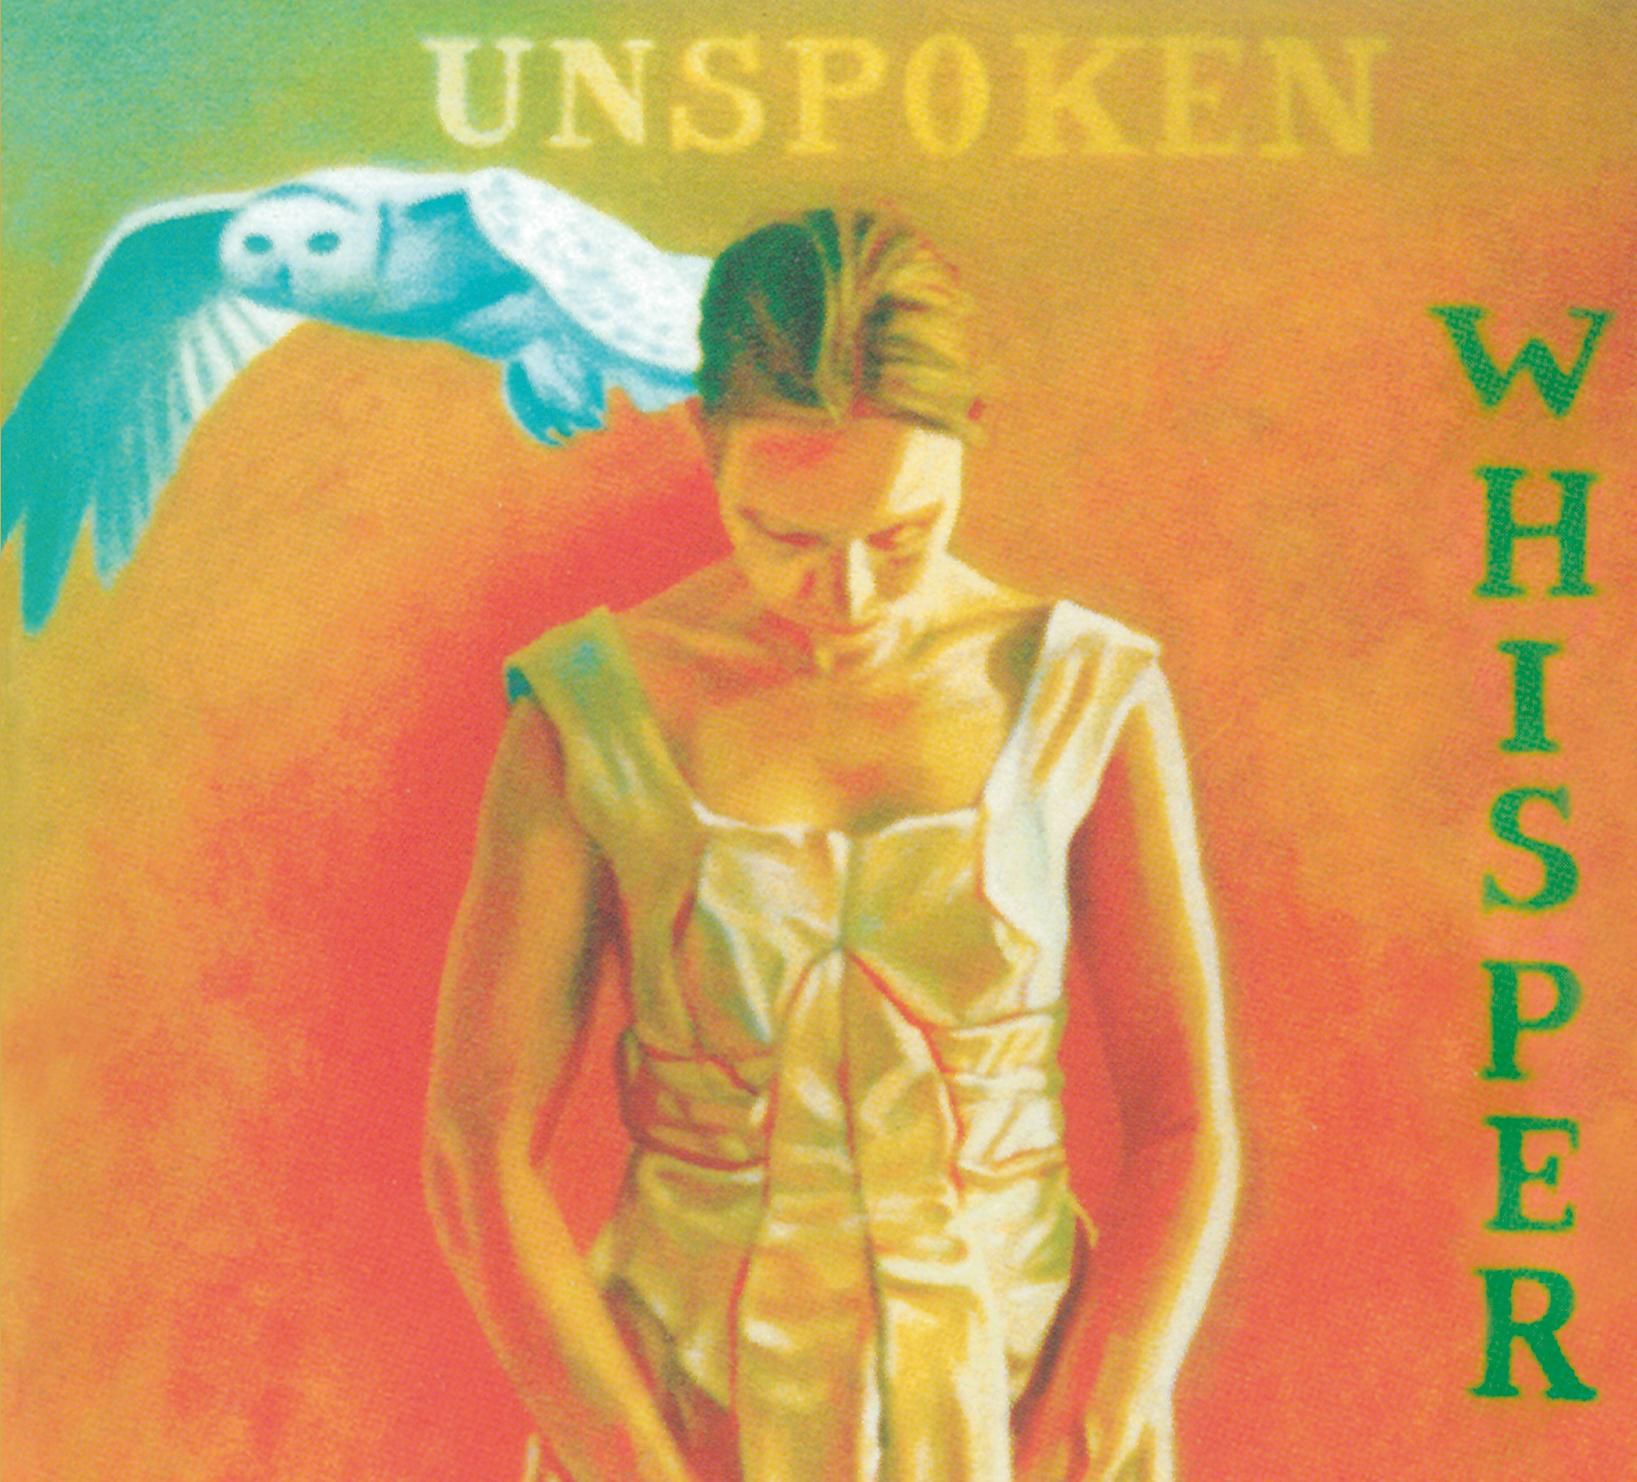 UNSPOKEN WHISPER